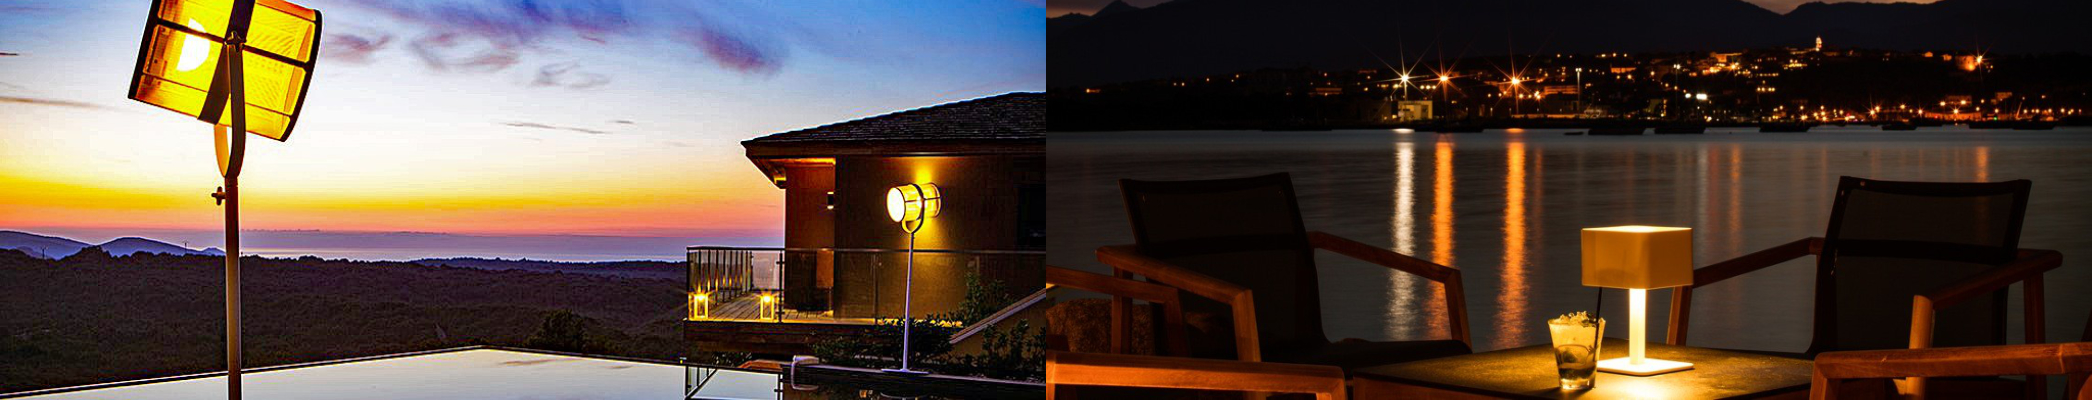 Outdoor Lighting Settings